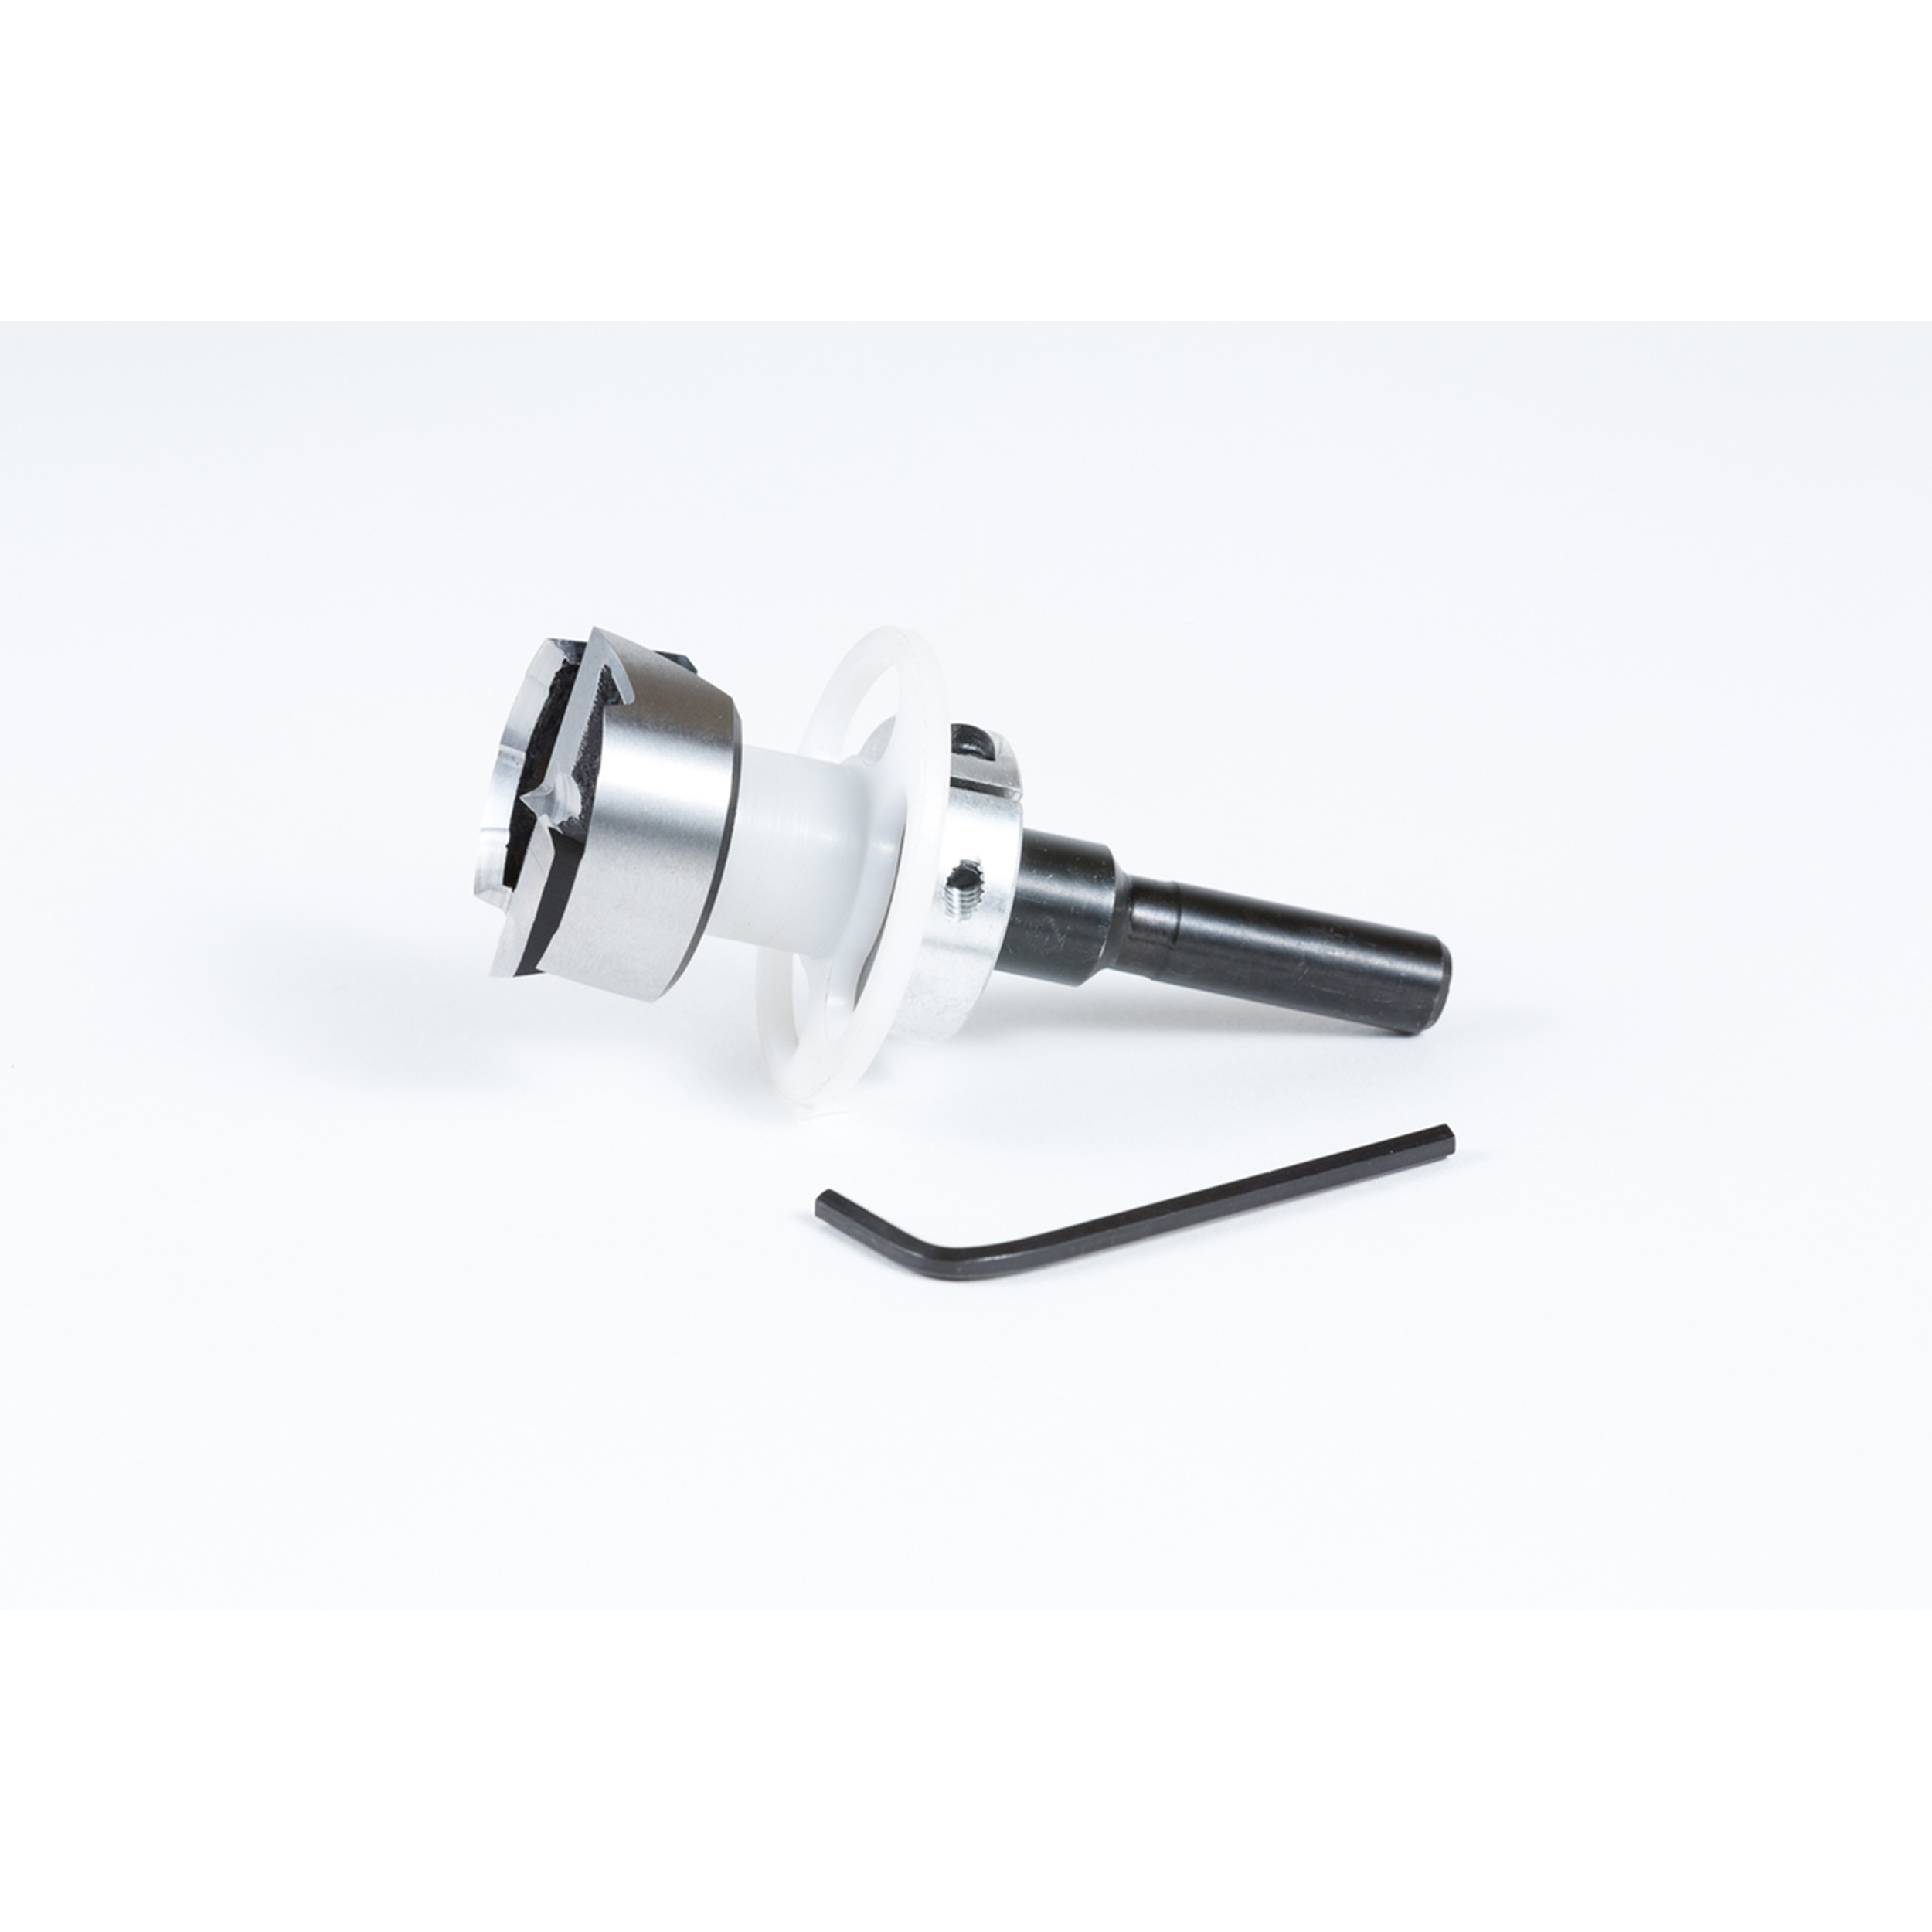 Replacement Forstner Bit Assembly 35mm